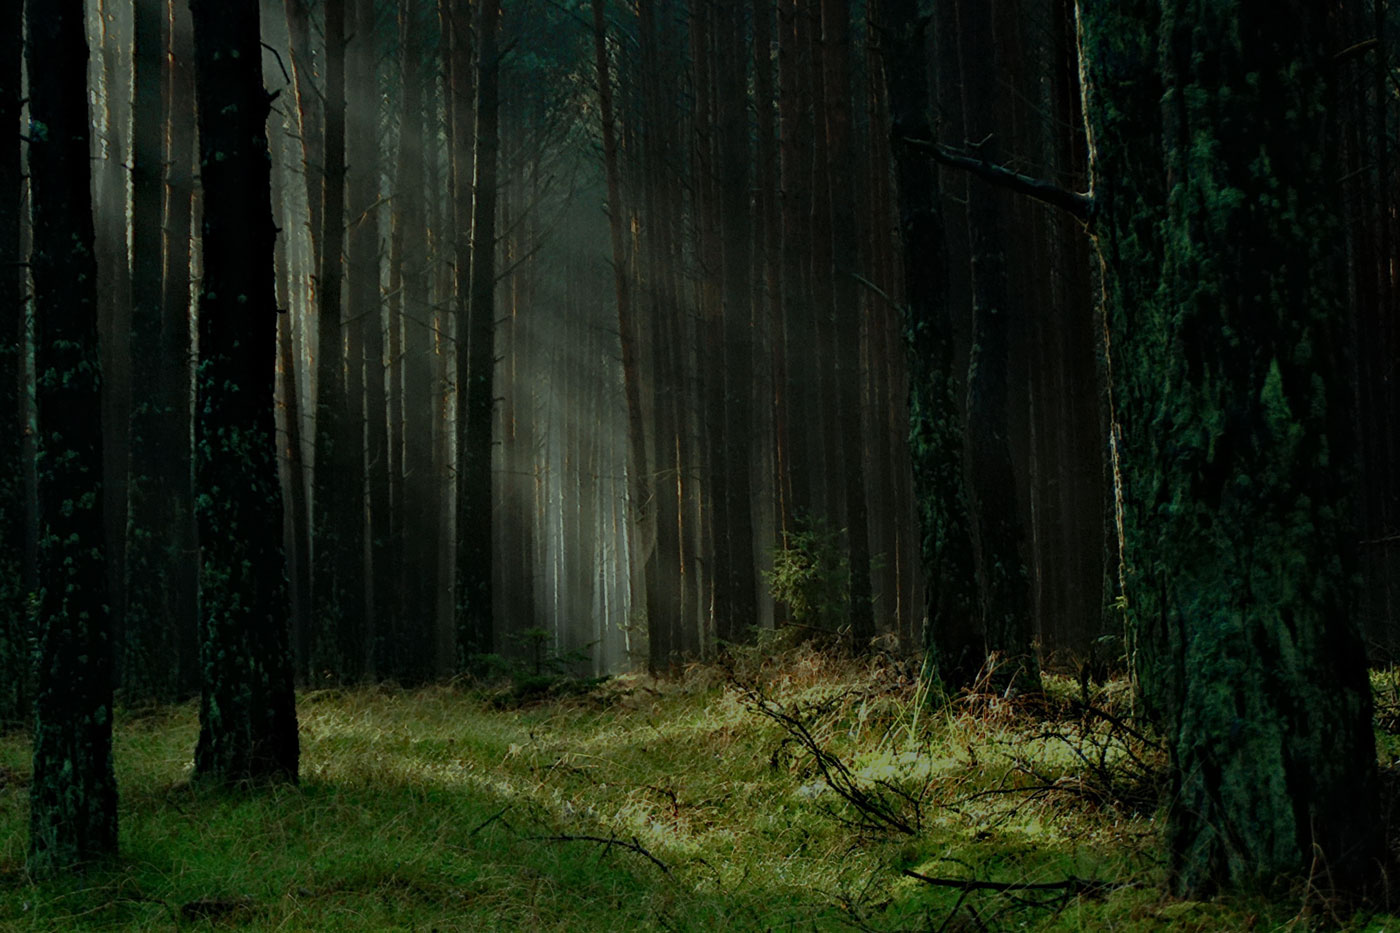 Thick forest broken with sunlight shining in the center